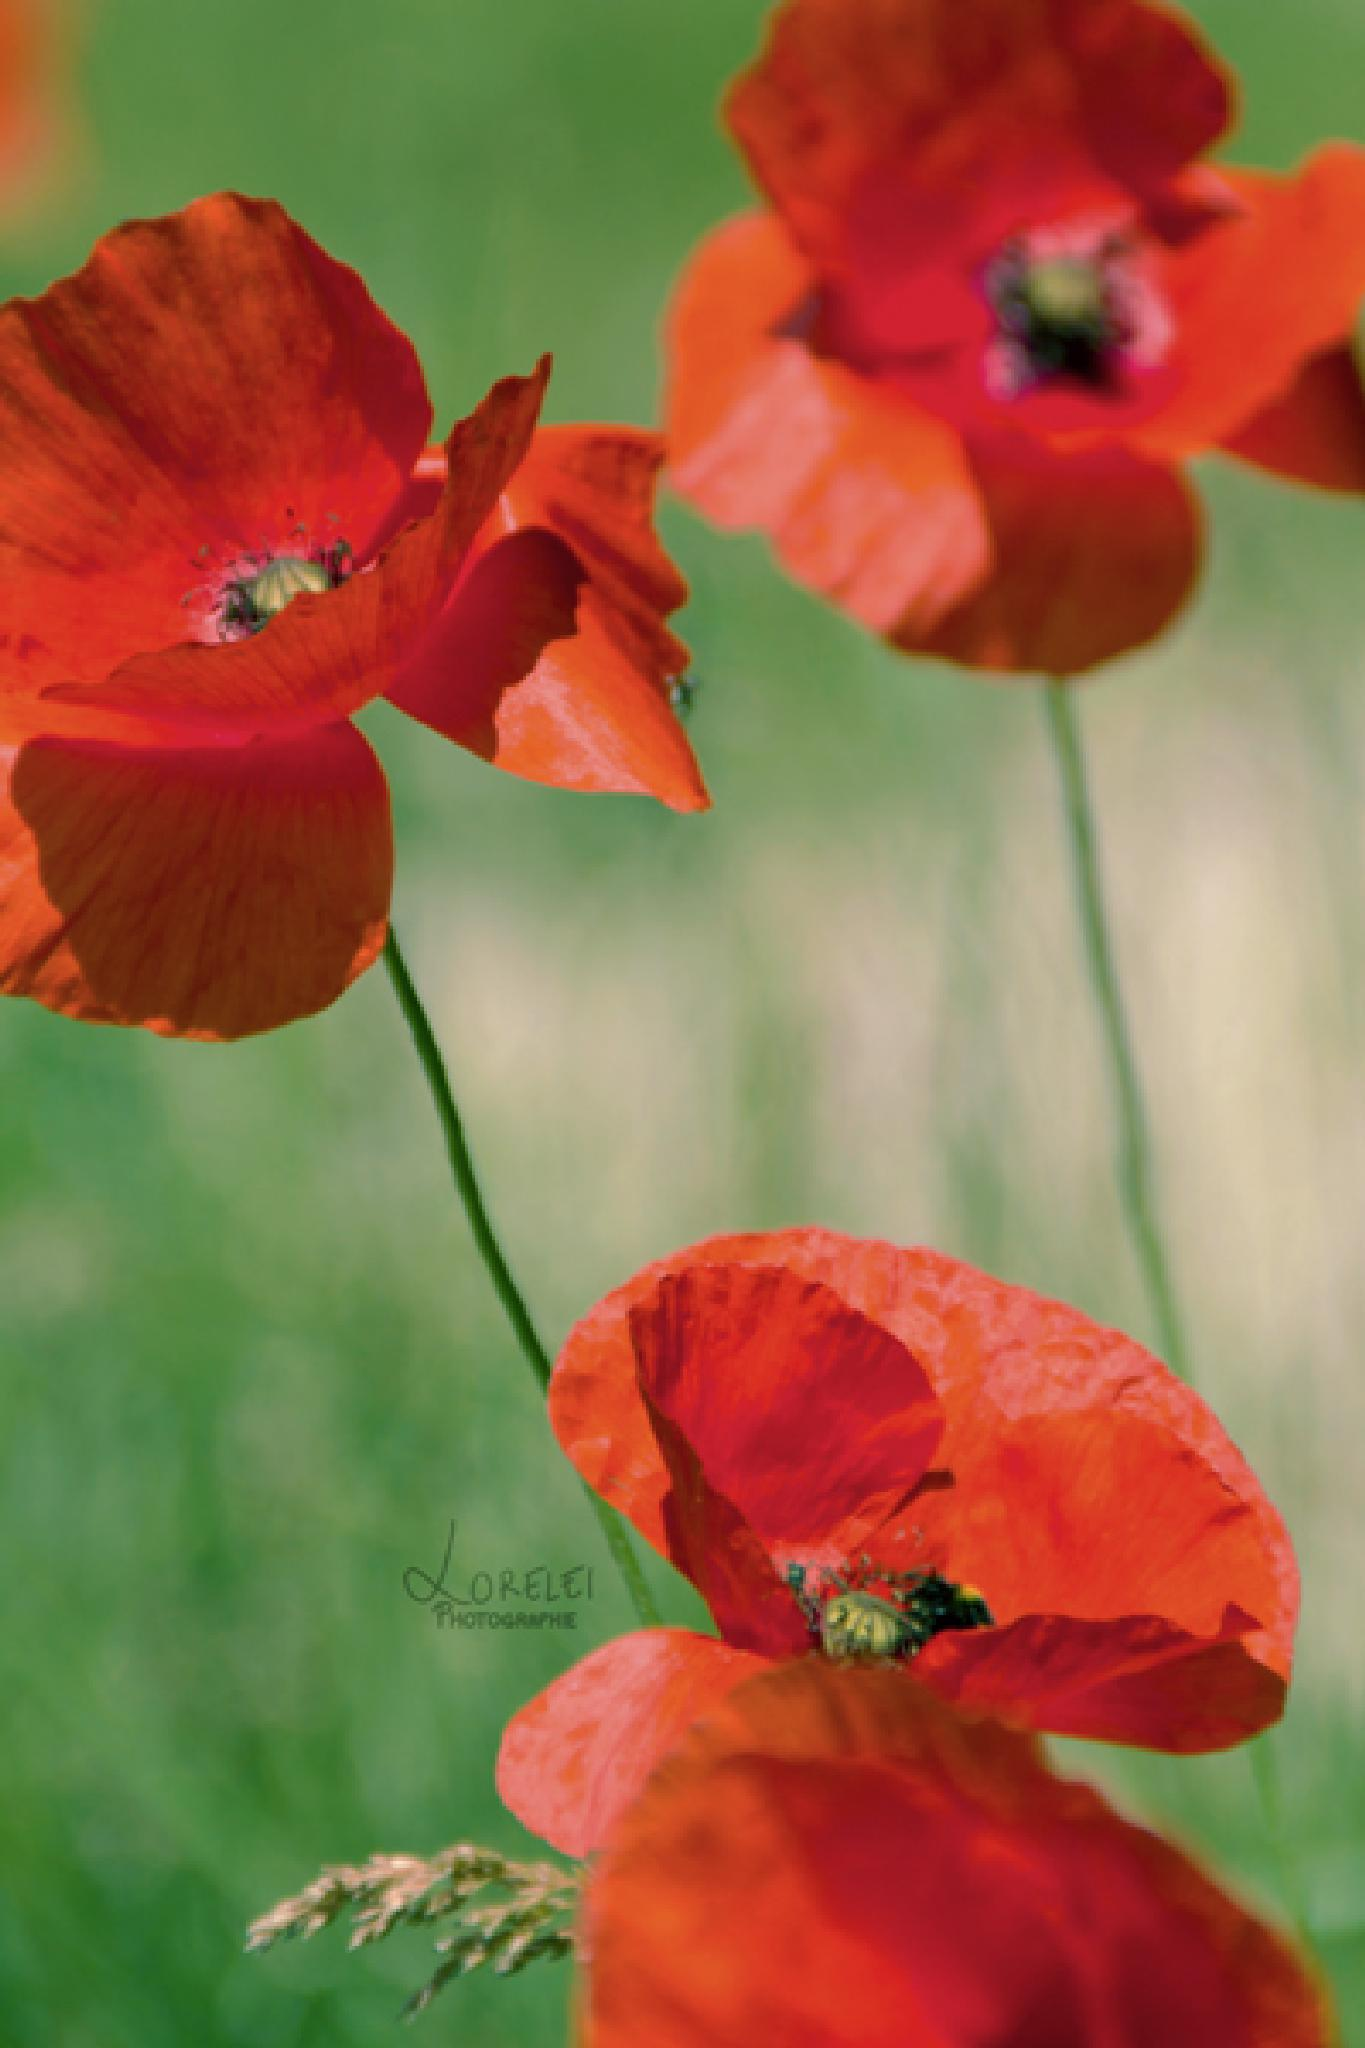 Poppies by loreleiphotographie